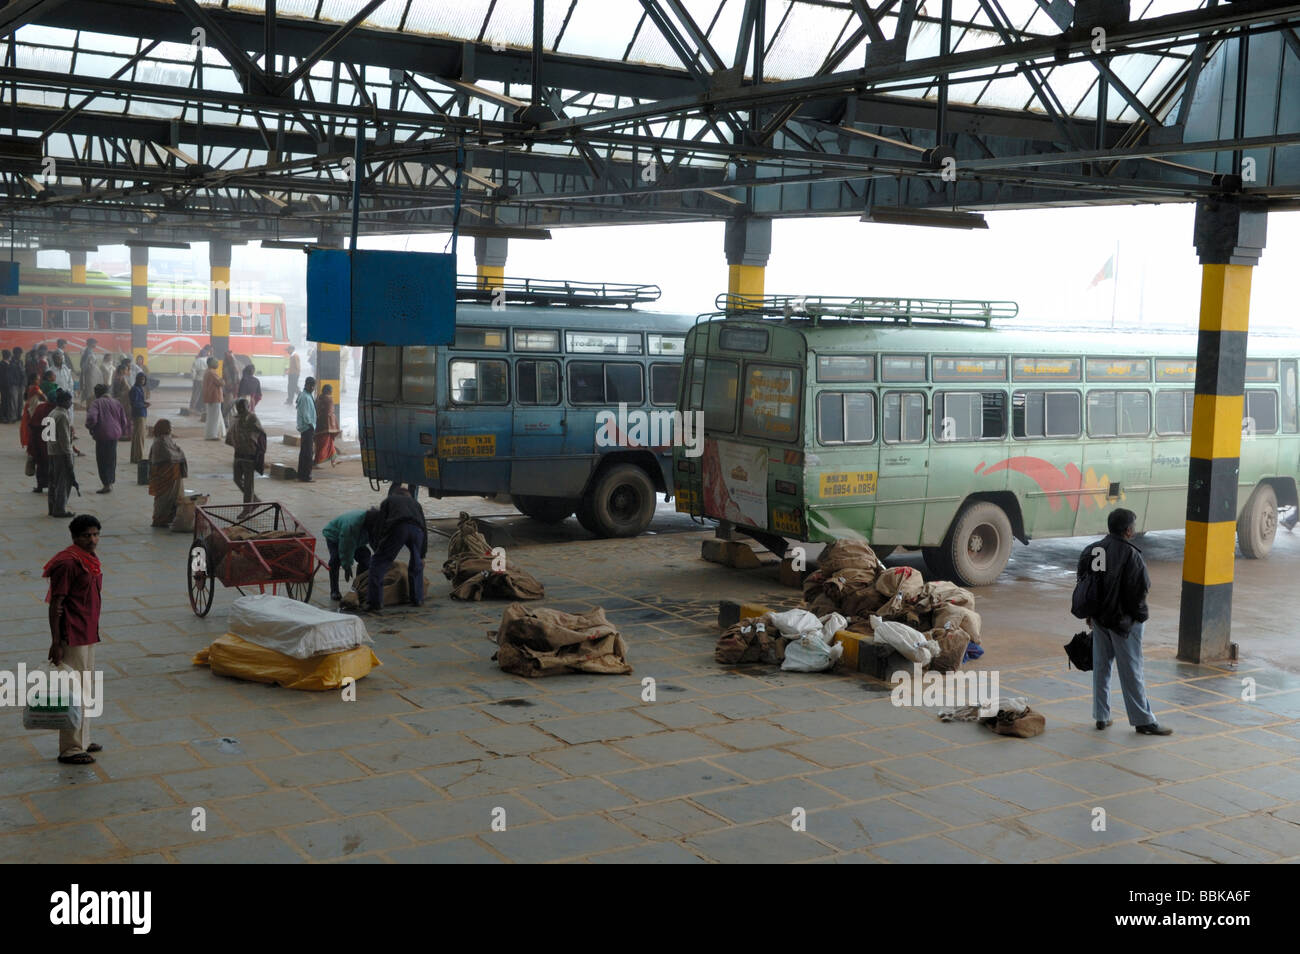 India Bus Stop Stock Photos & India Bus Stop Stock Images - Alamy